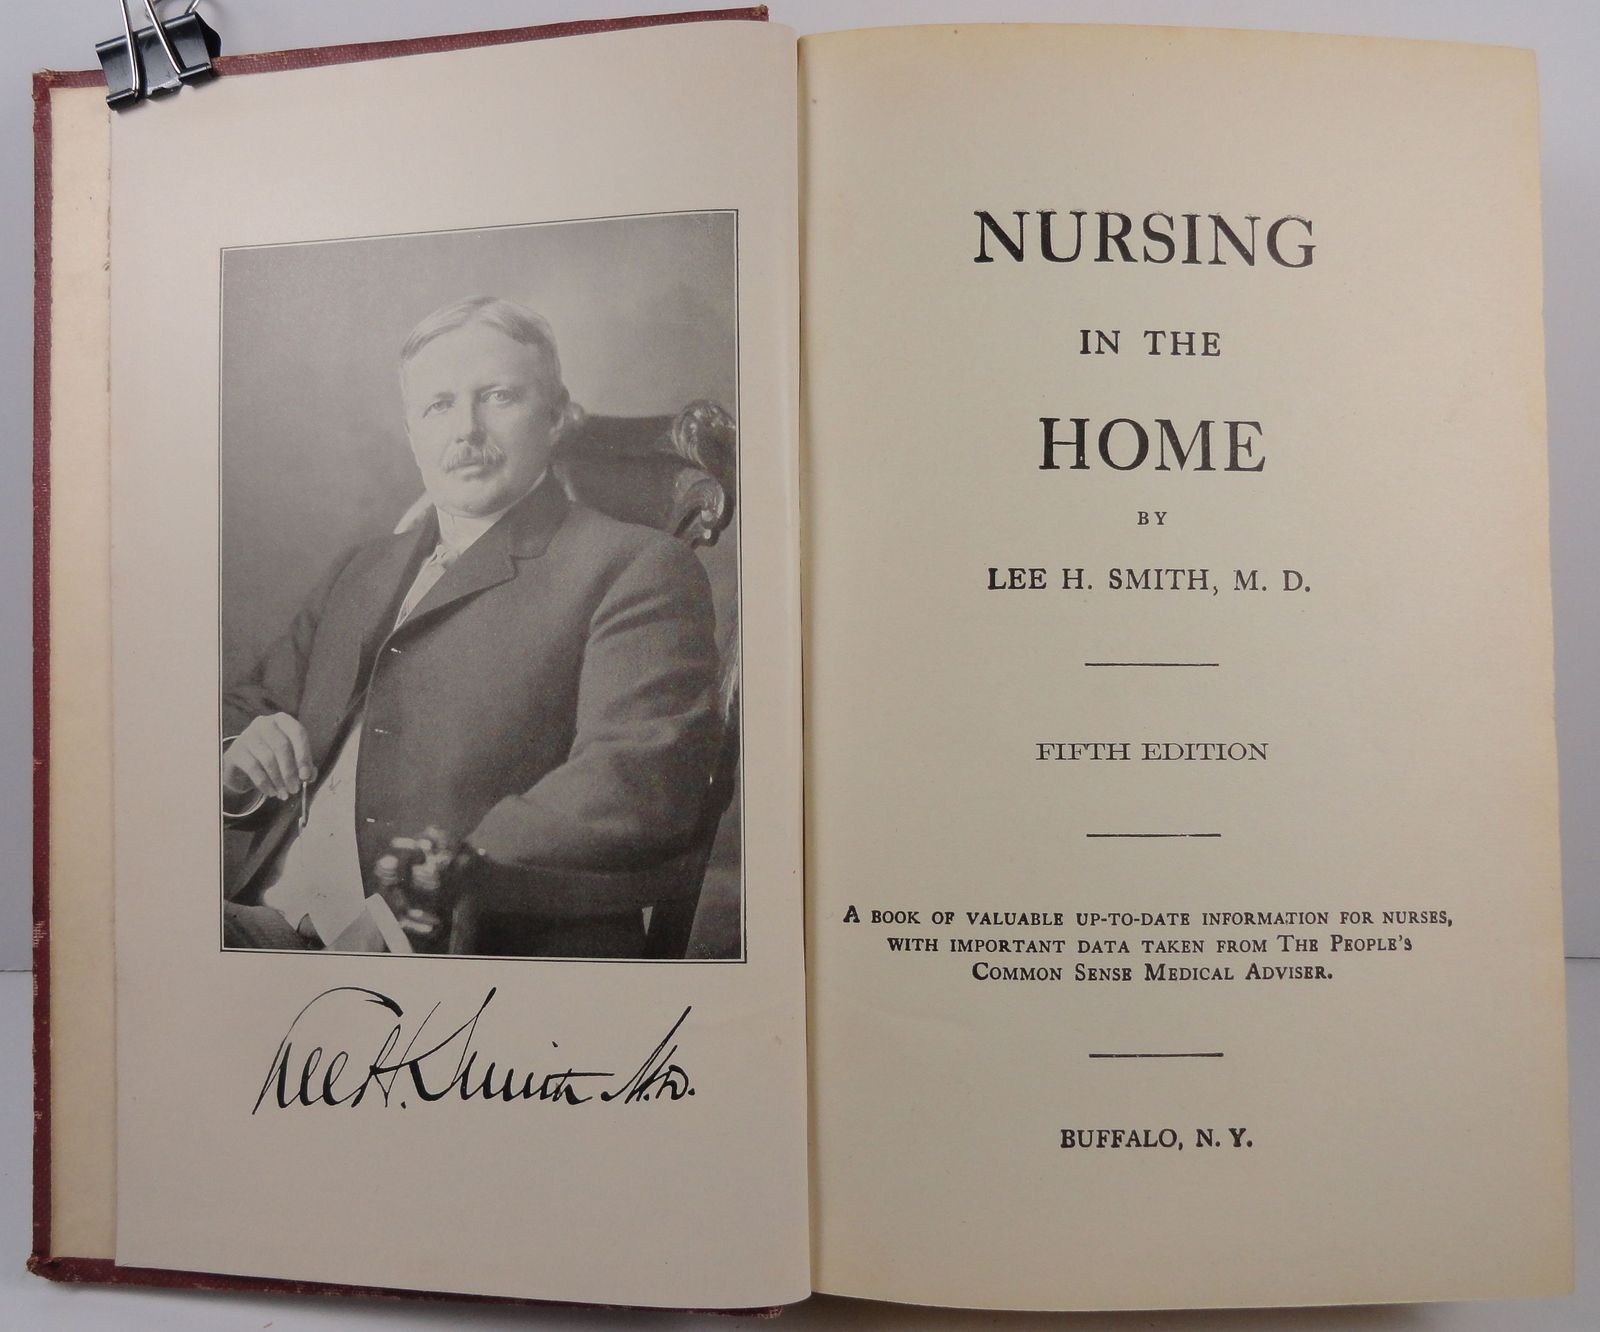 Nursing in the Home by Lee H. Smith 1922 Fifth Edition